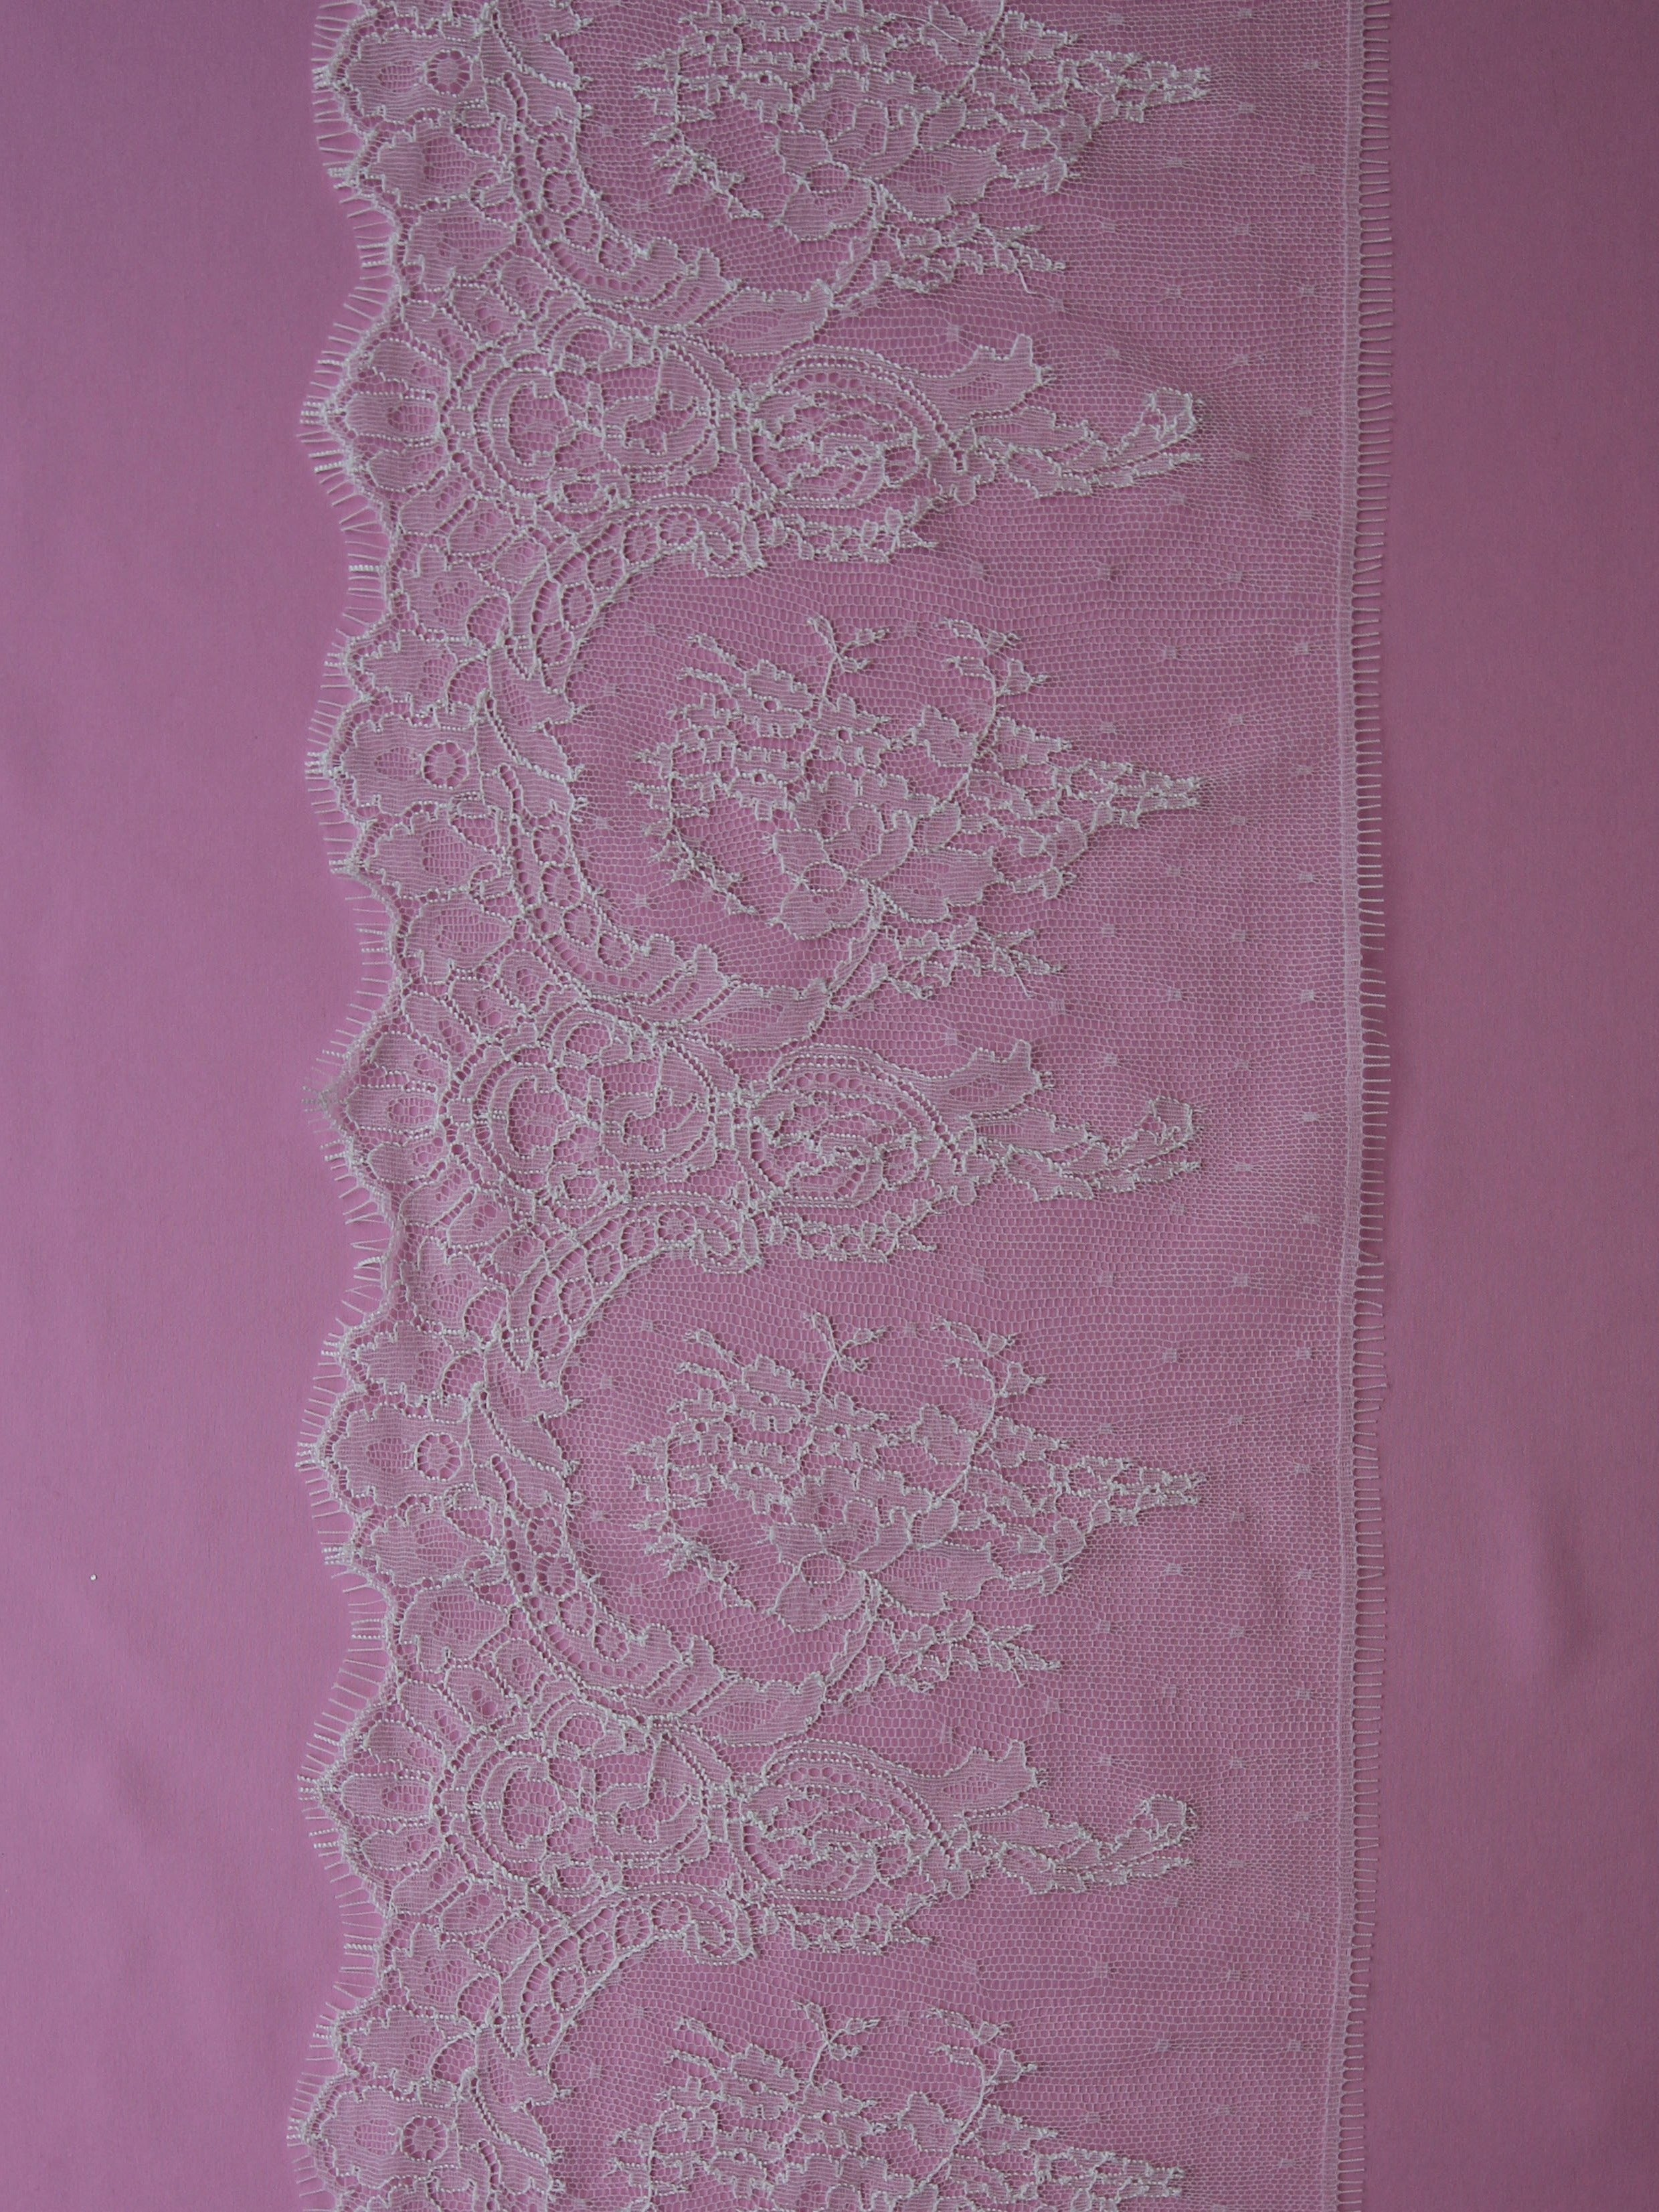 Ivory Chantilly Lace Trim - Sienna